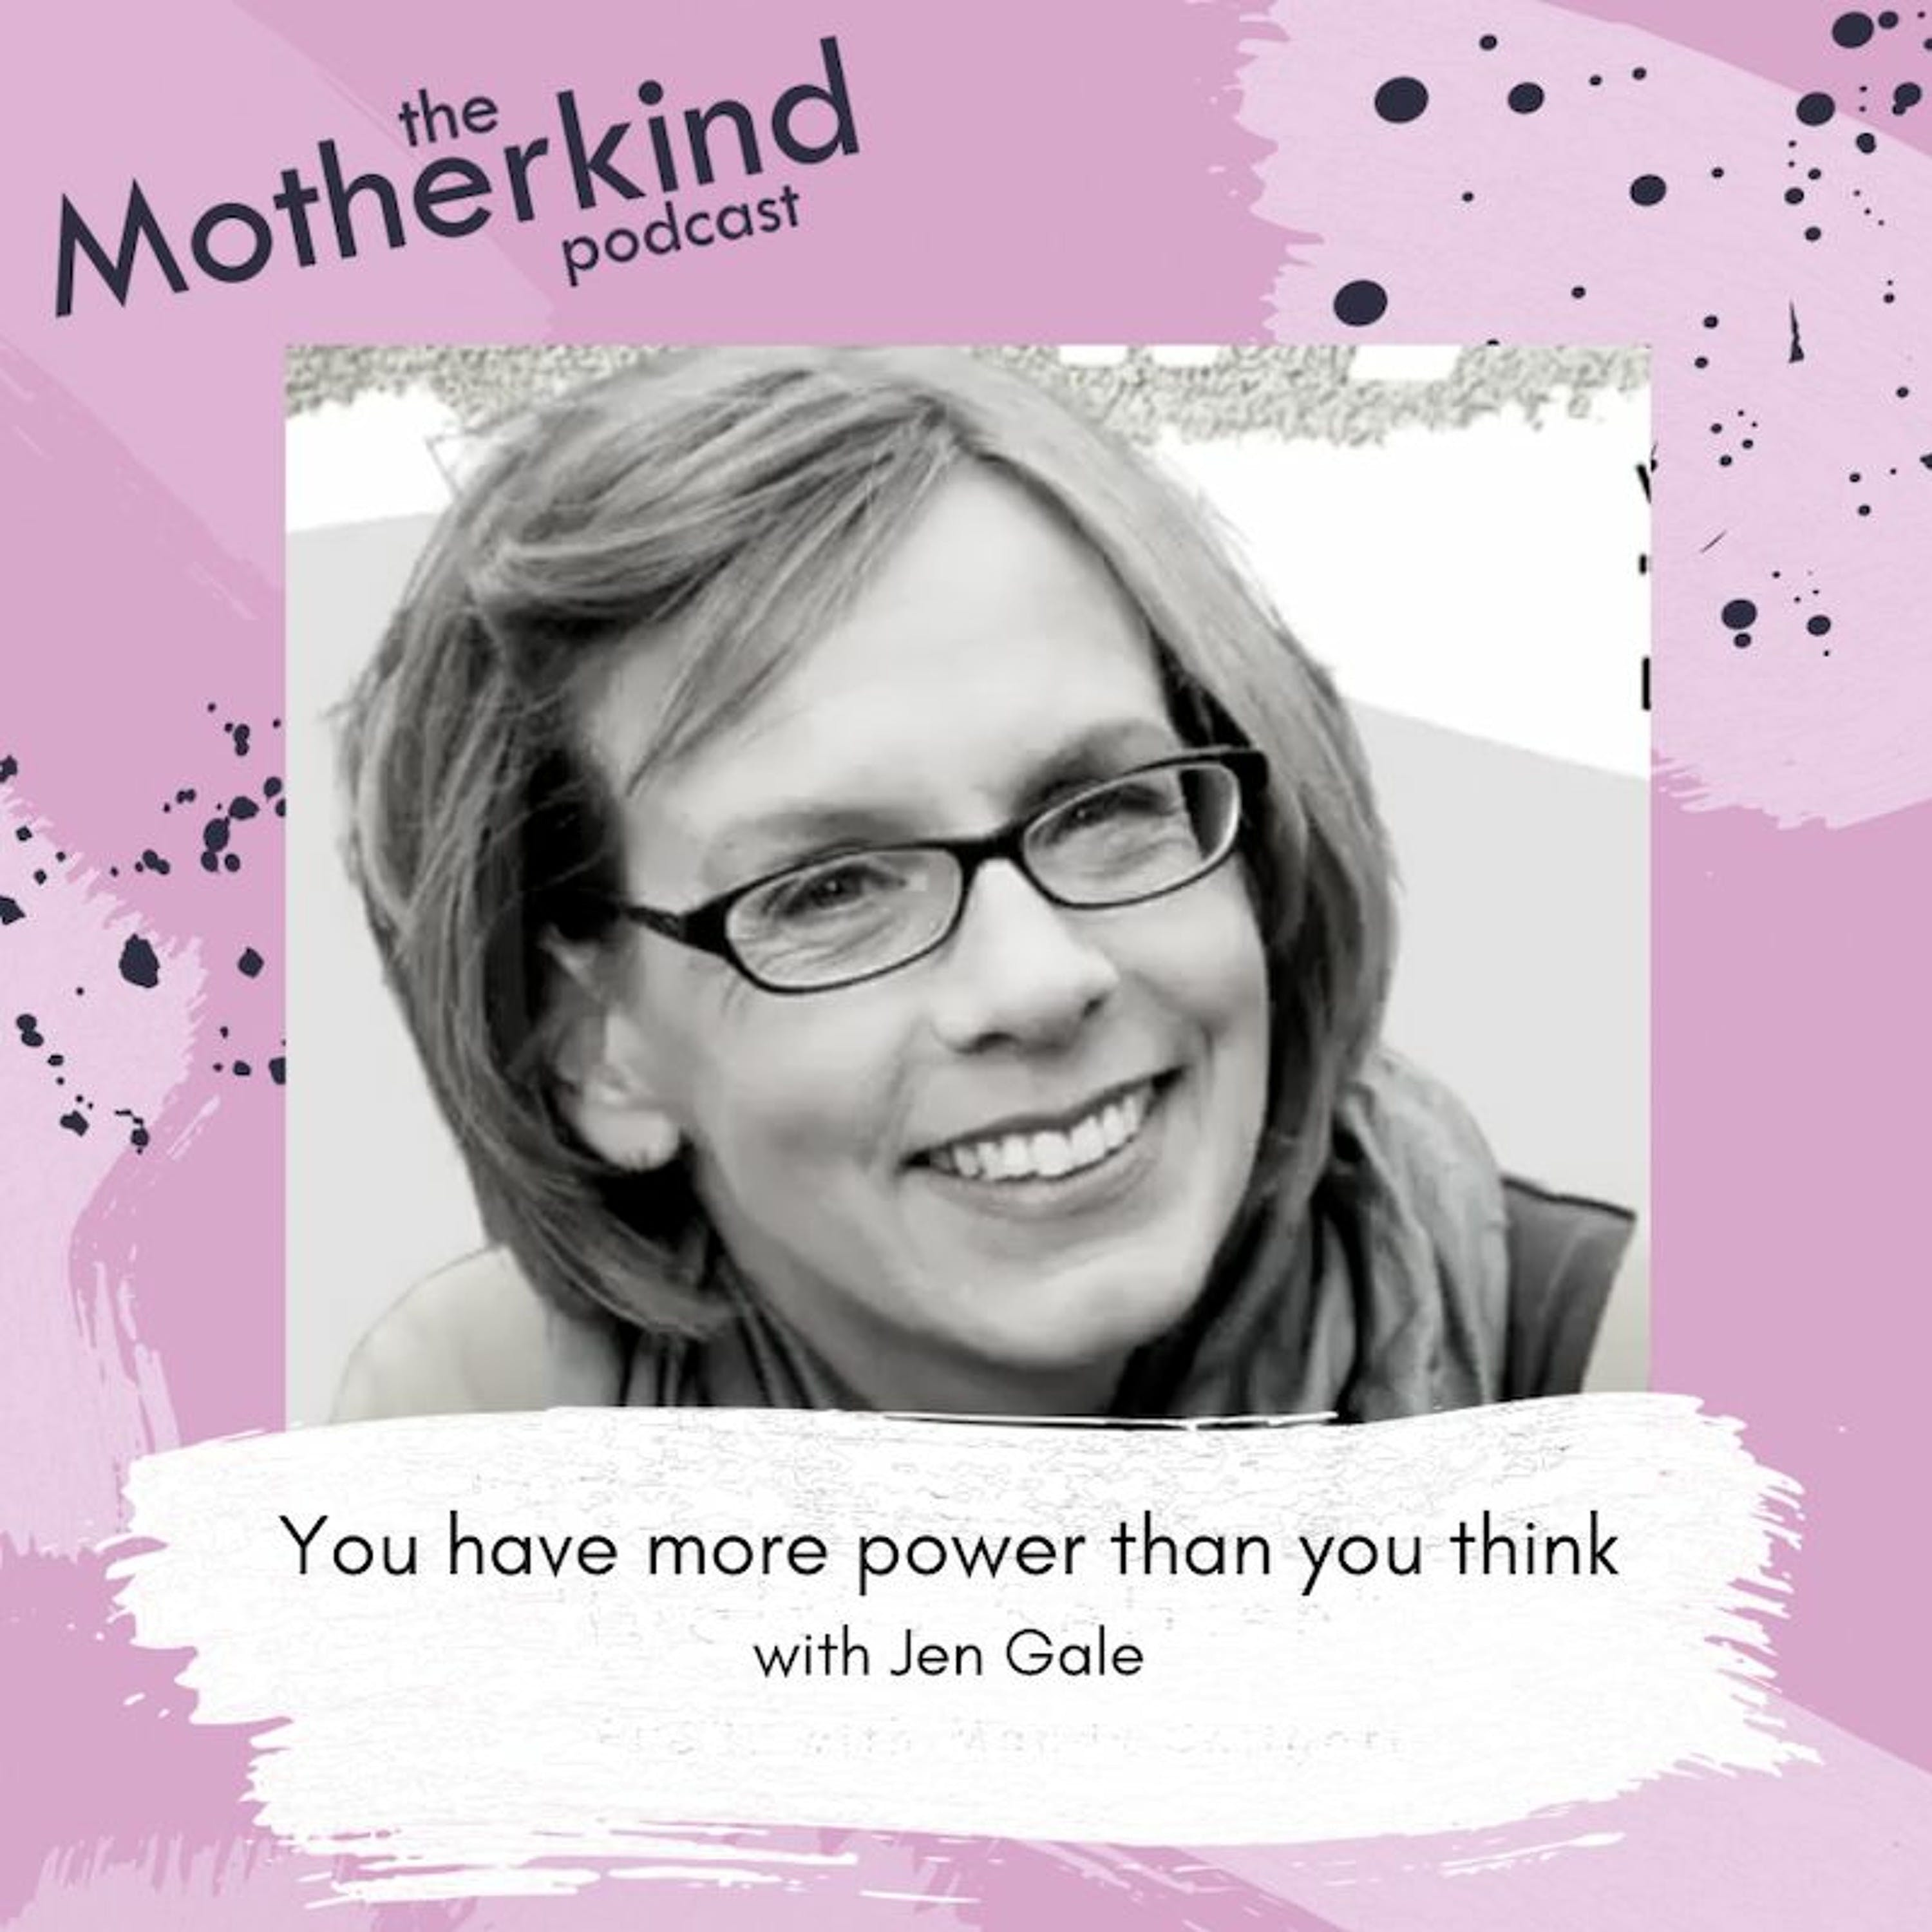 You have more power than you think with Jen Gale